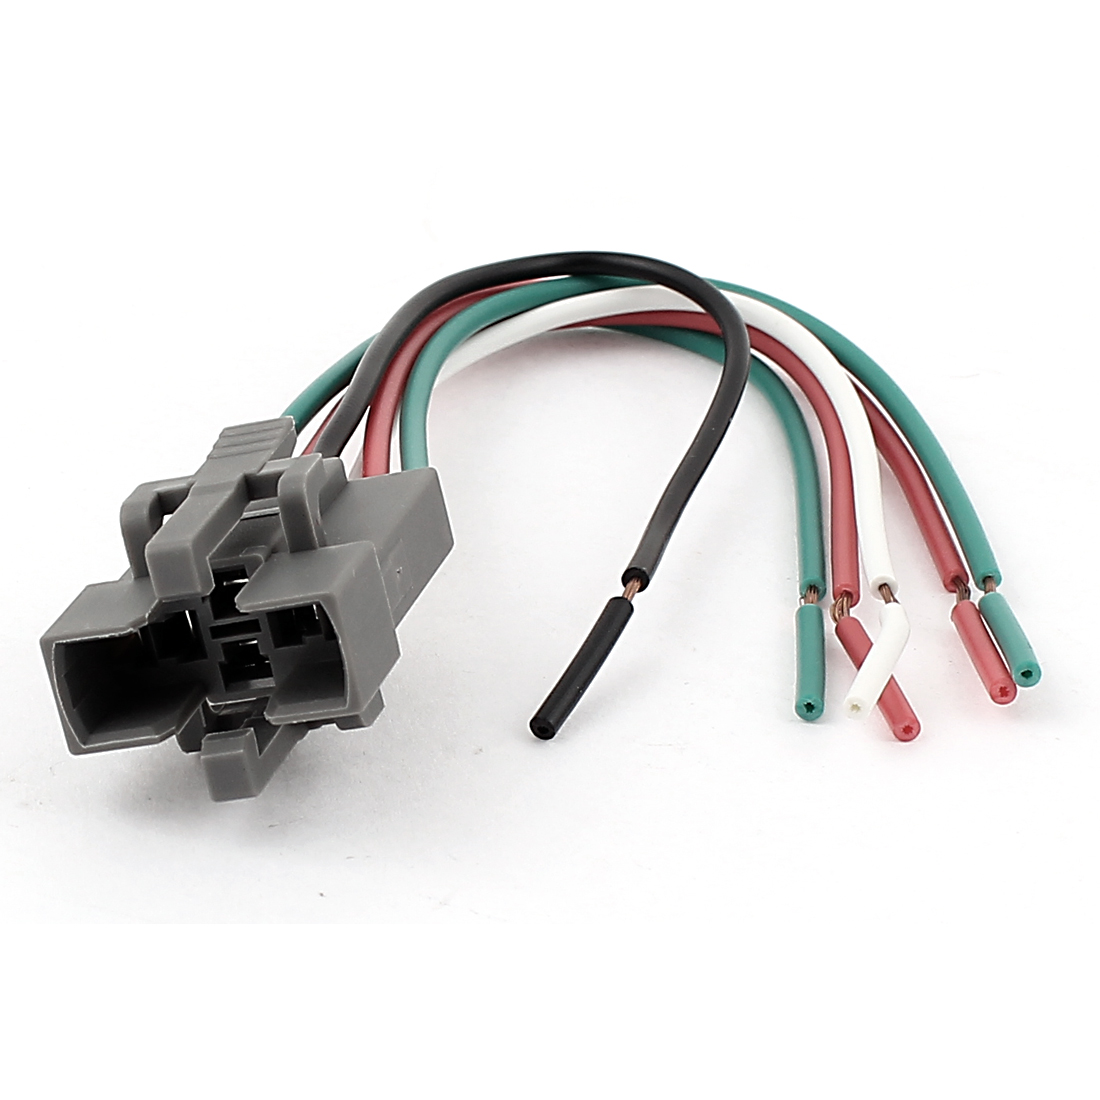 DC 12V Car Vehicle Air Conditioner 6-Wires Relay Socket Connector